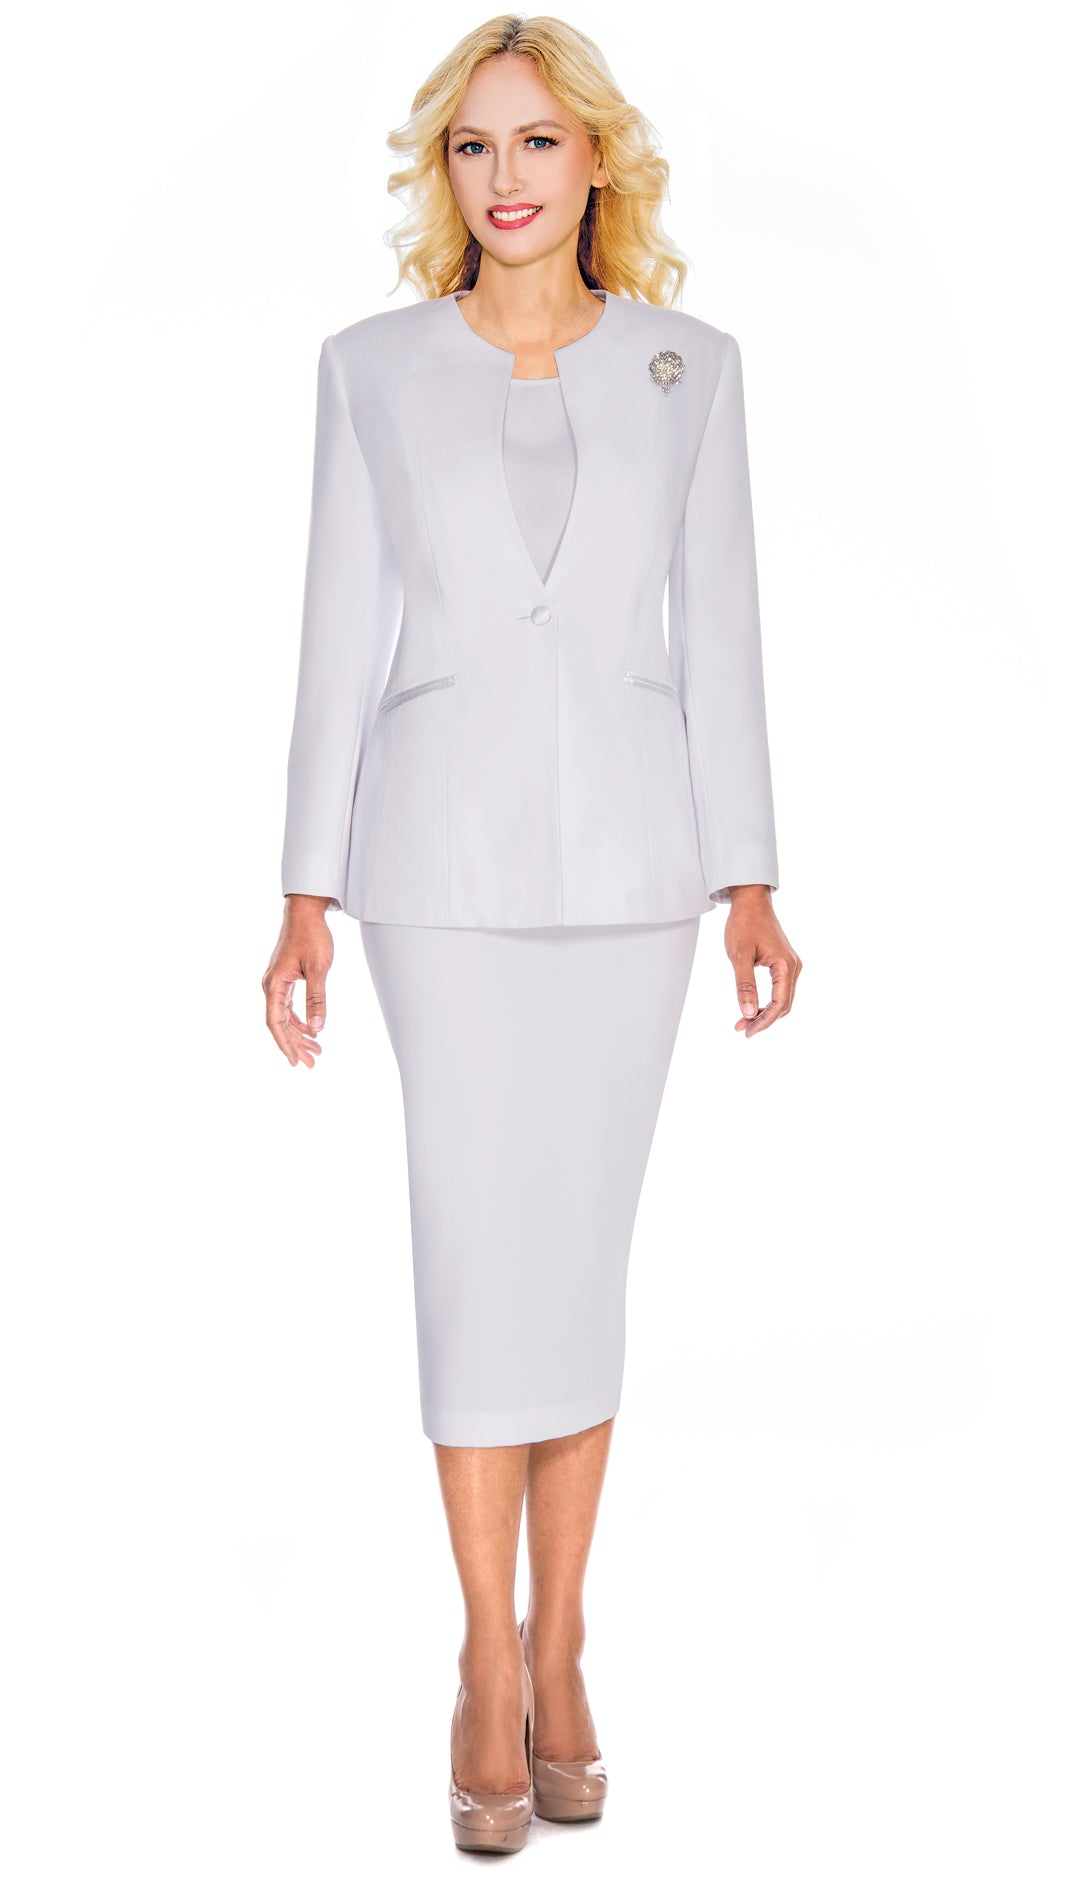 Giovanna Usher Suit 0708-White - Church Suits For Less